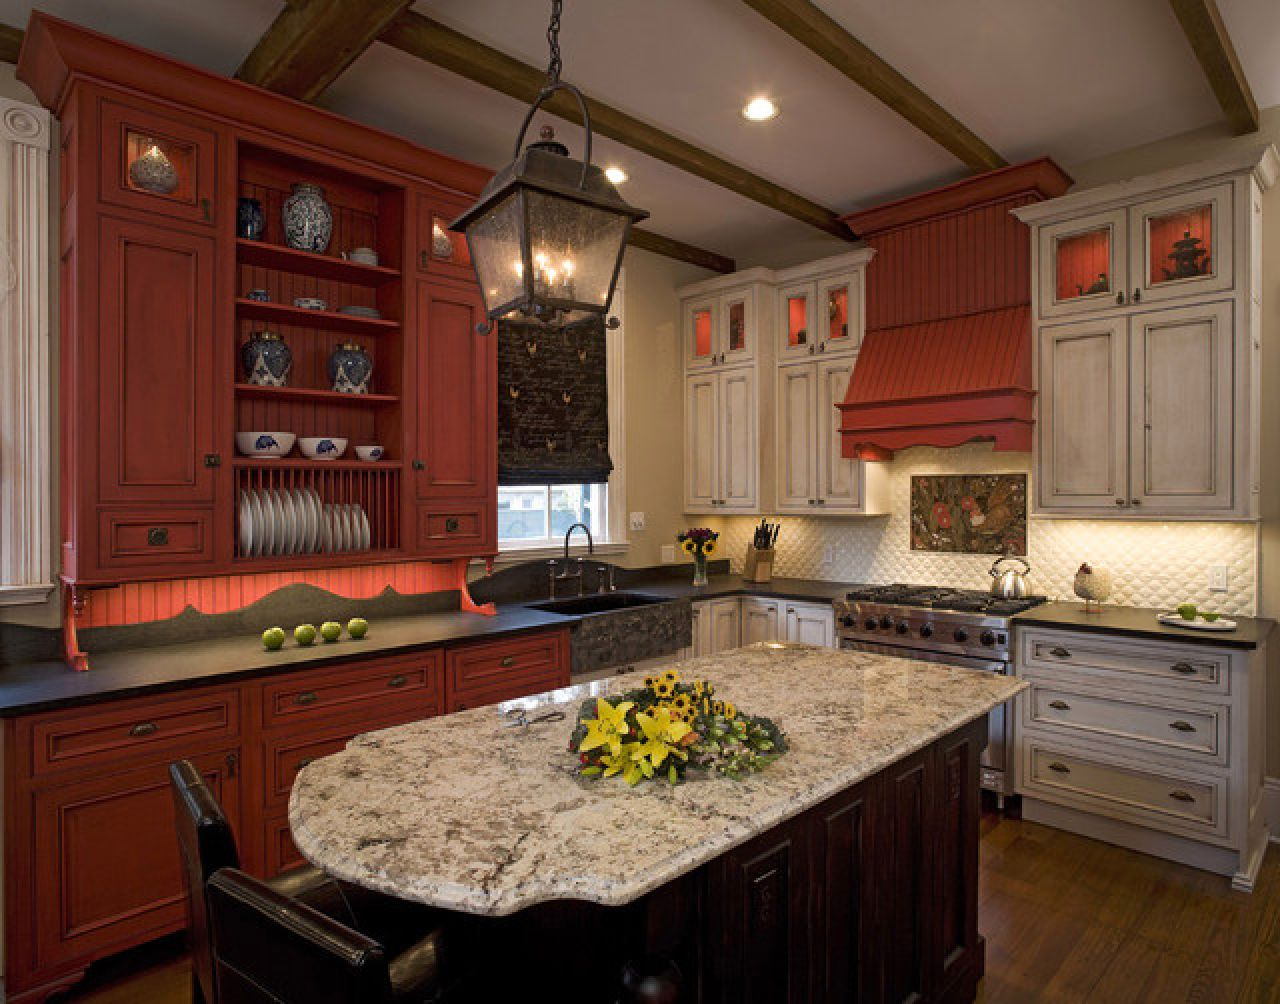 Inspirational Traditional Chinese Kitchen Design Asian Kitchenss Kitchen Cabinet Colors Red Kitchen Cabinets Traditional Kitchen Design